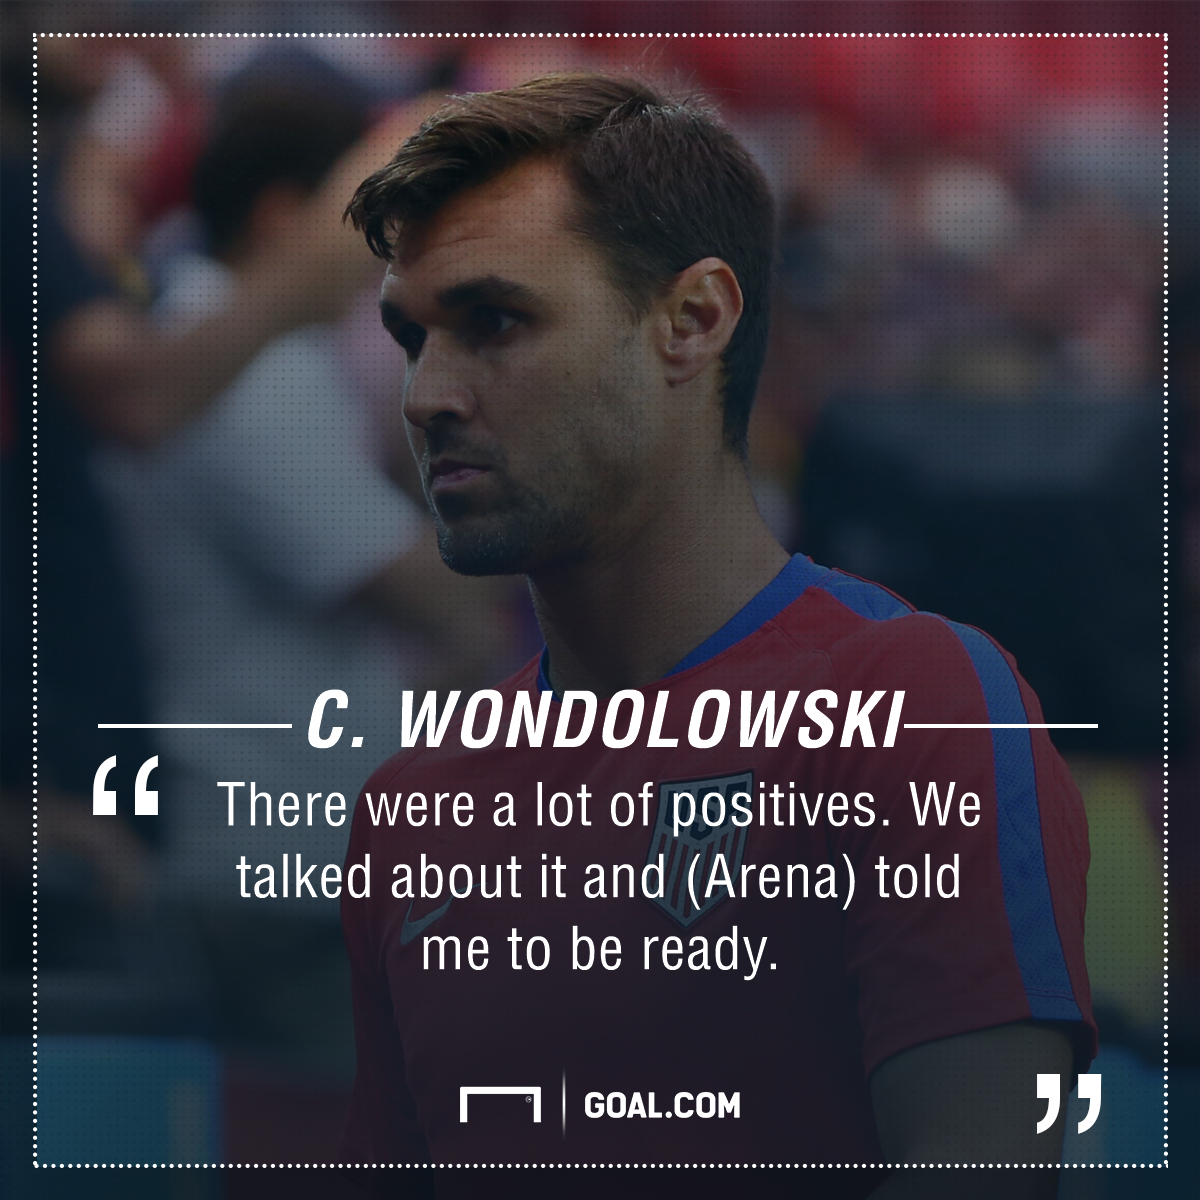 Chris Wondolowski playing surface